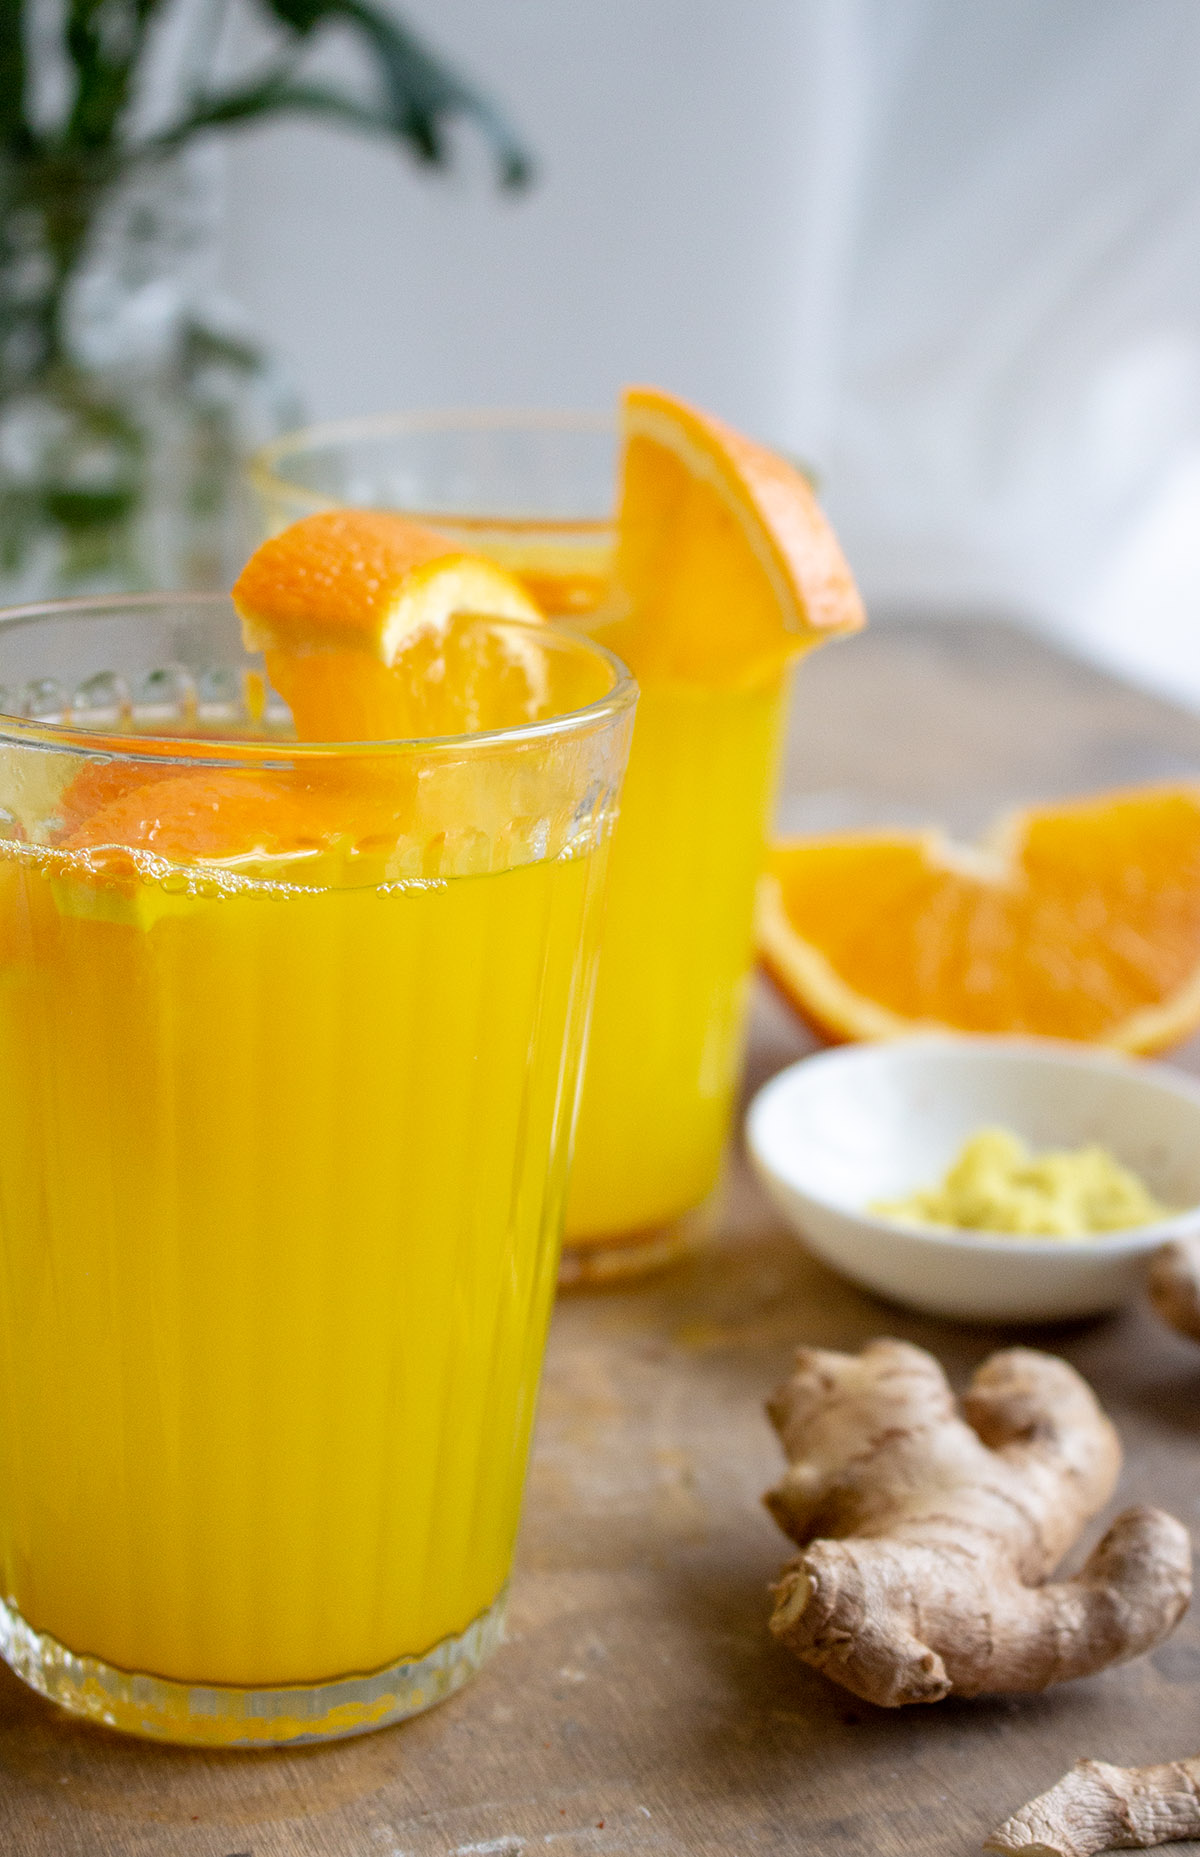 Ginger Tee, Ginger Orange Tee, Anti Flu Tea, Healthy Drink